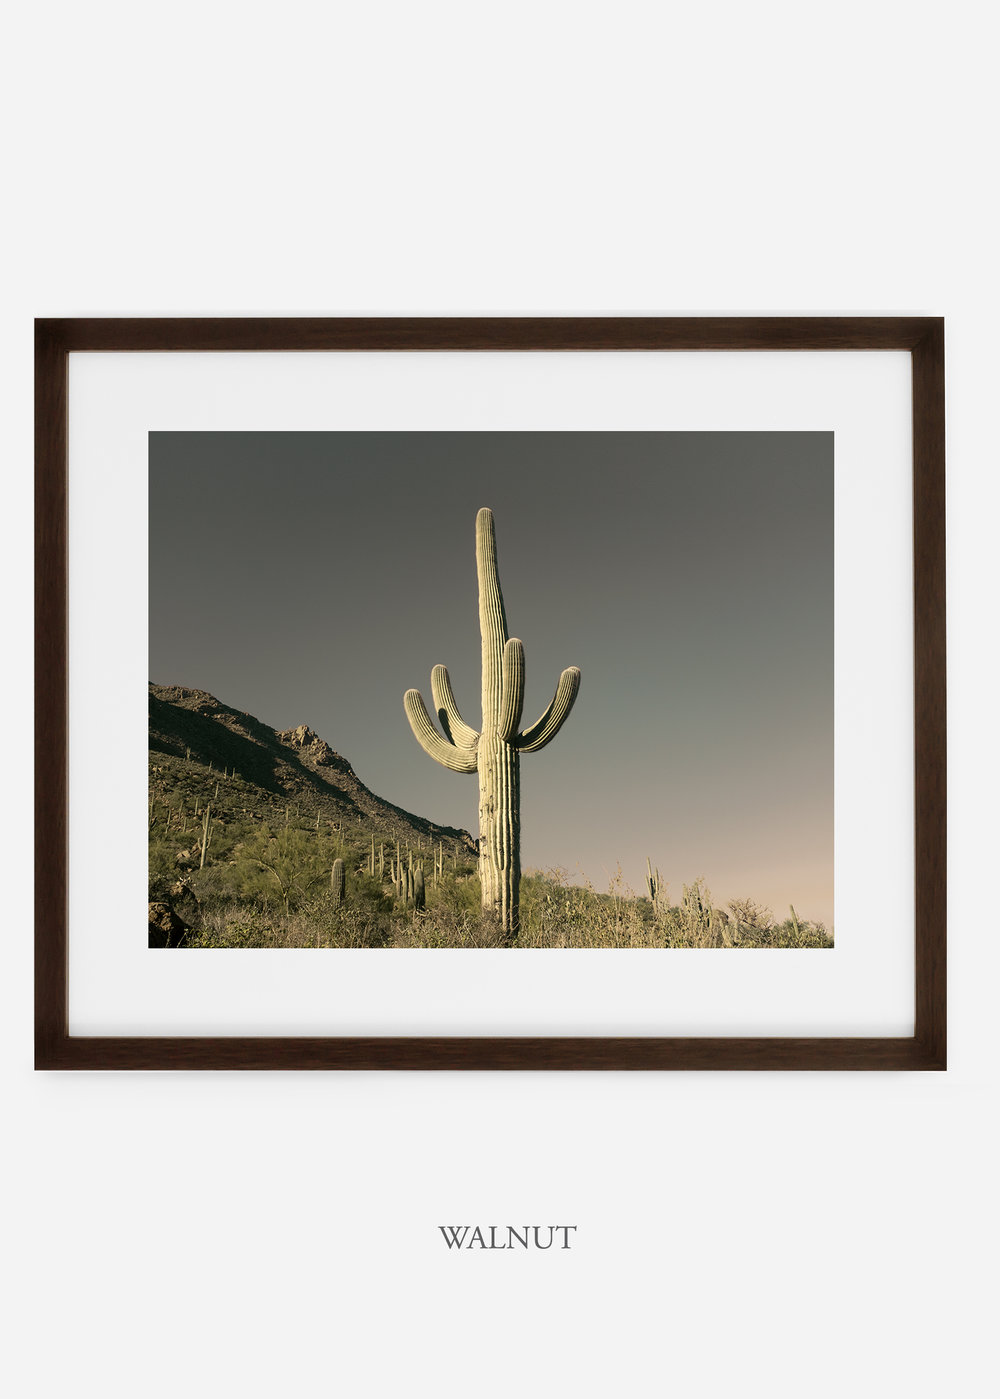 walnutframe-saguaroNo.19-wildercalifornia-art-wallart-cactusprint-homedecor-prints-arizona-botanical-artwork-interiordesign.jpg